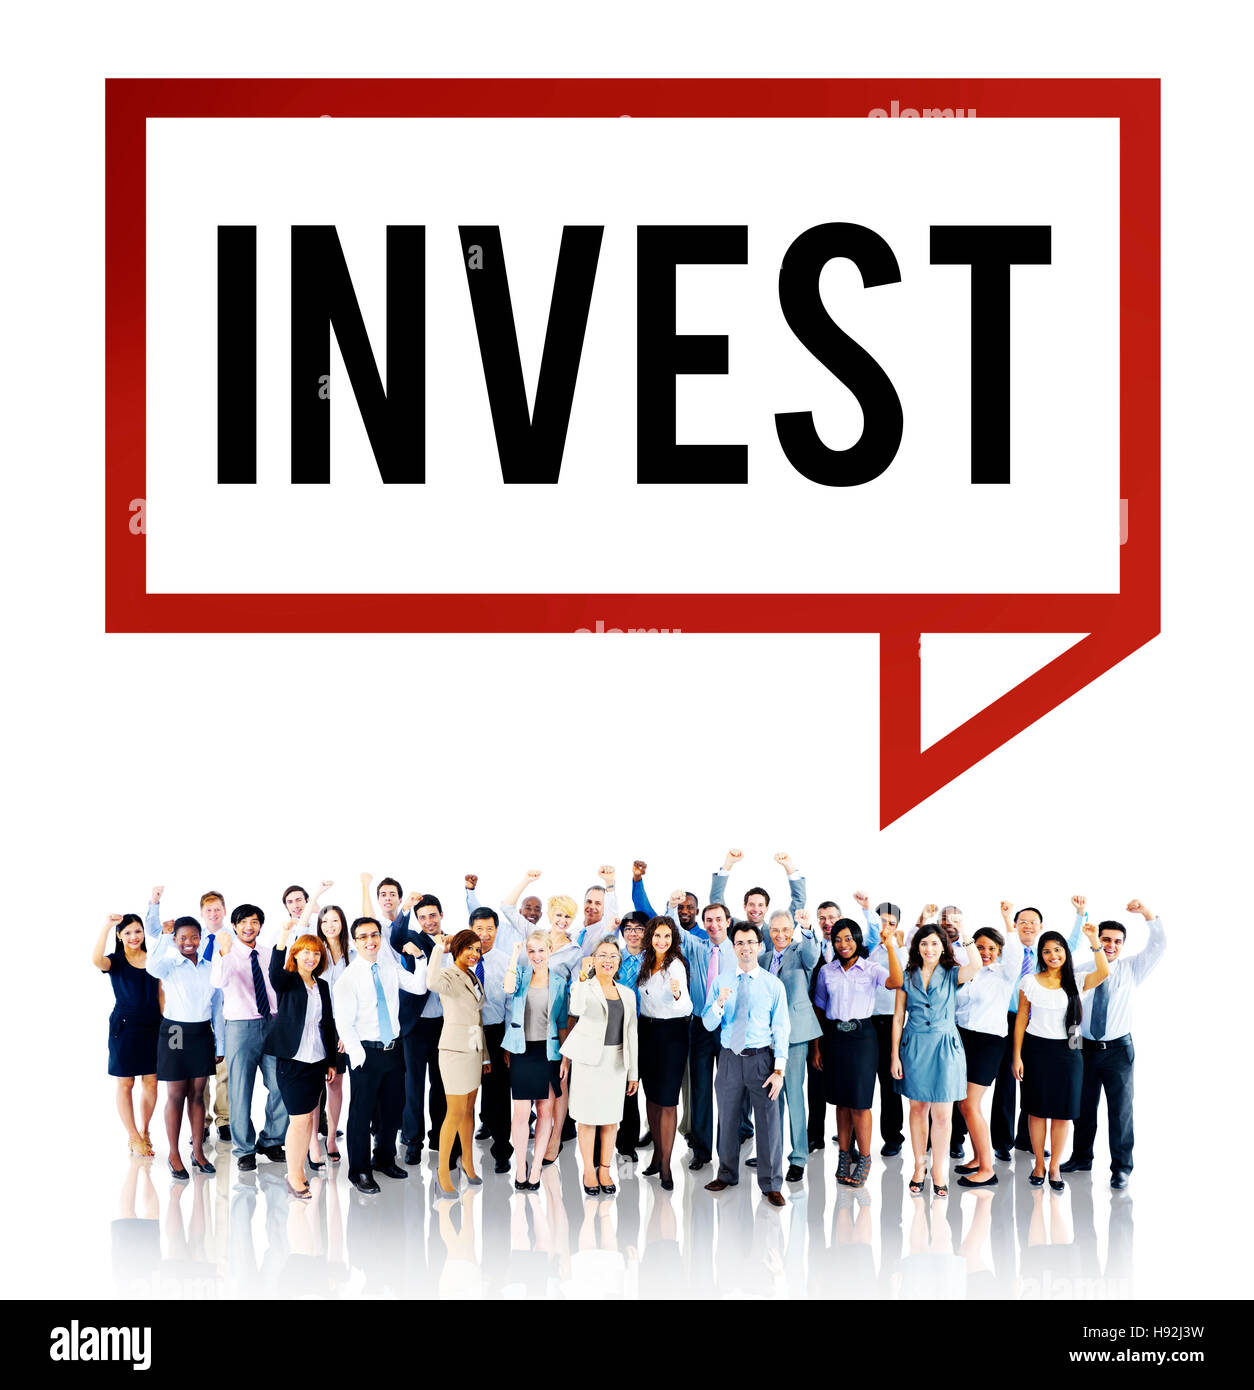 Invest Investment Economy Financial Marketing Concept - Stock Image